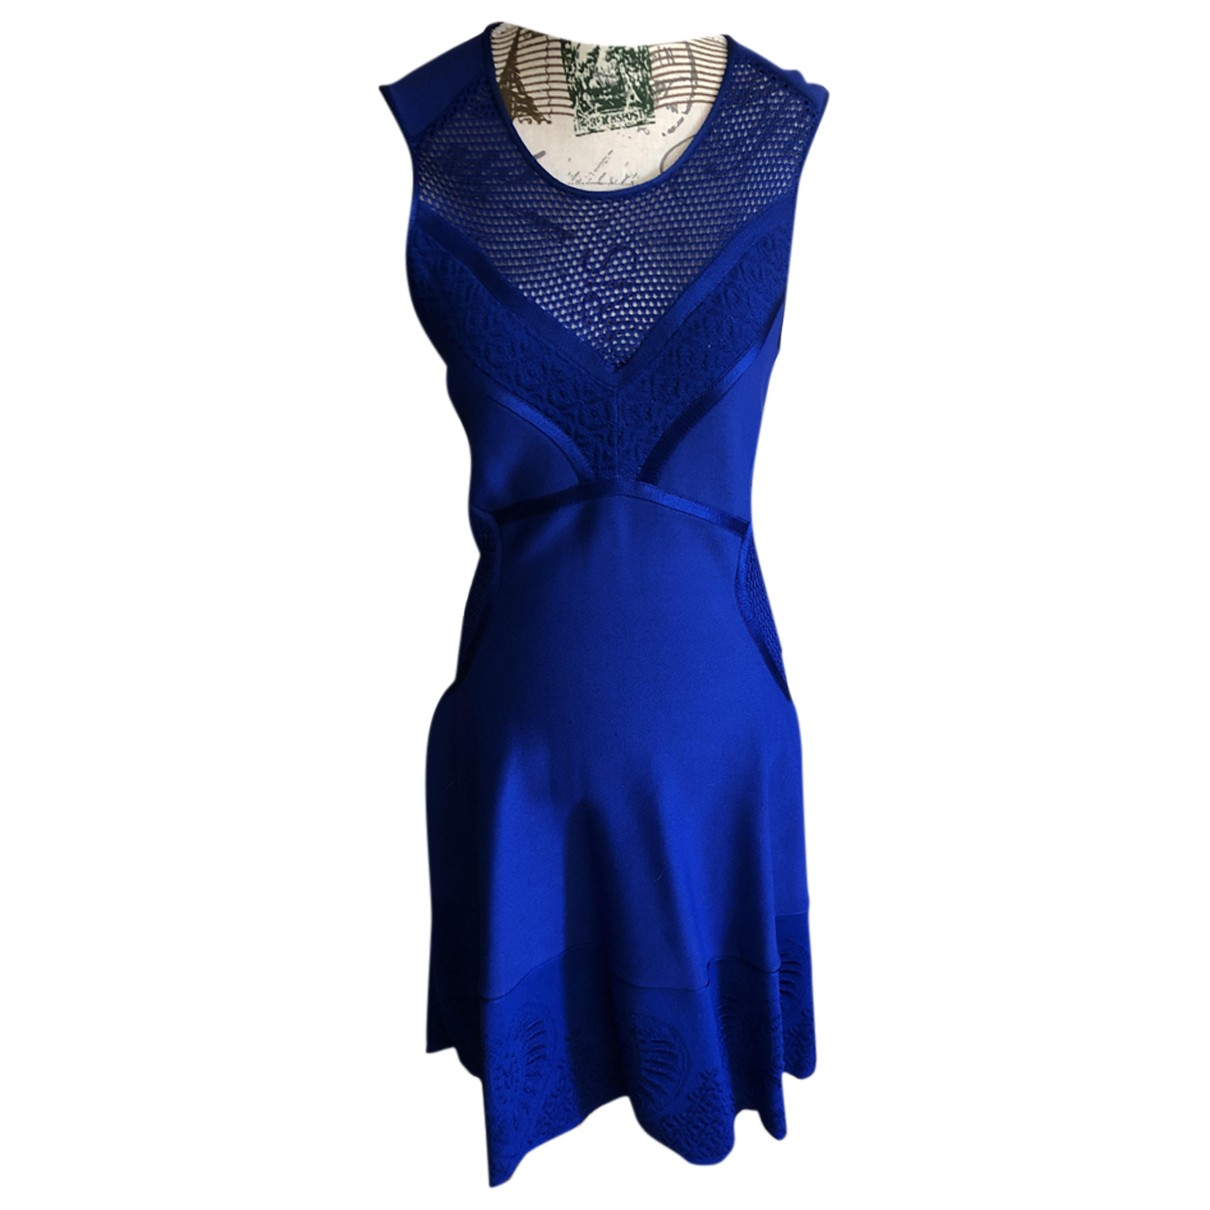 Roberto Cavalli \N Kleid in  Blau Synthetik